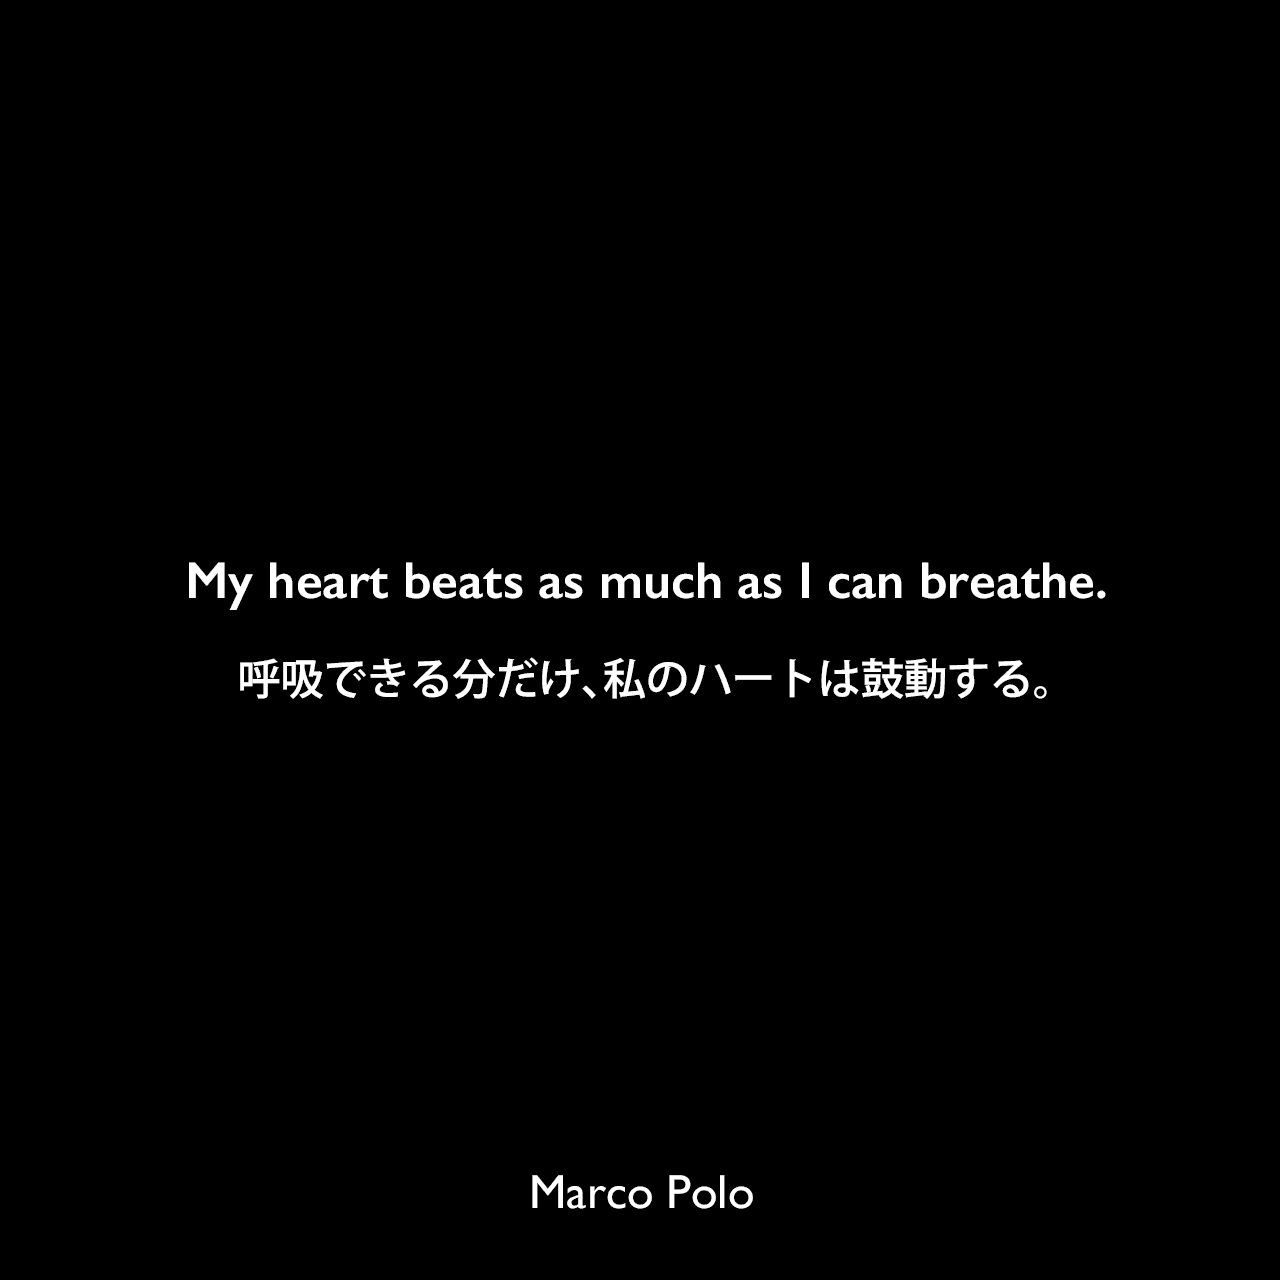 My heart beats as much as I can breathe.呼吸できる分だけ、私のハートは鼓動する。Marco Polo